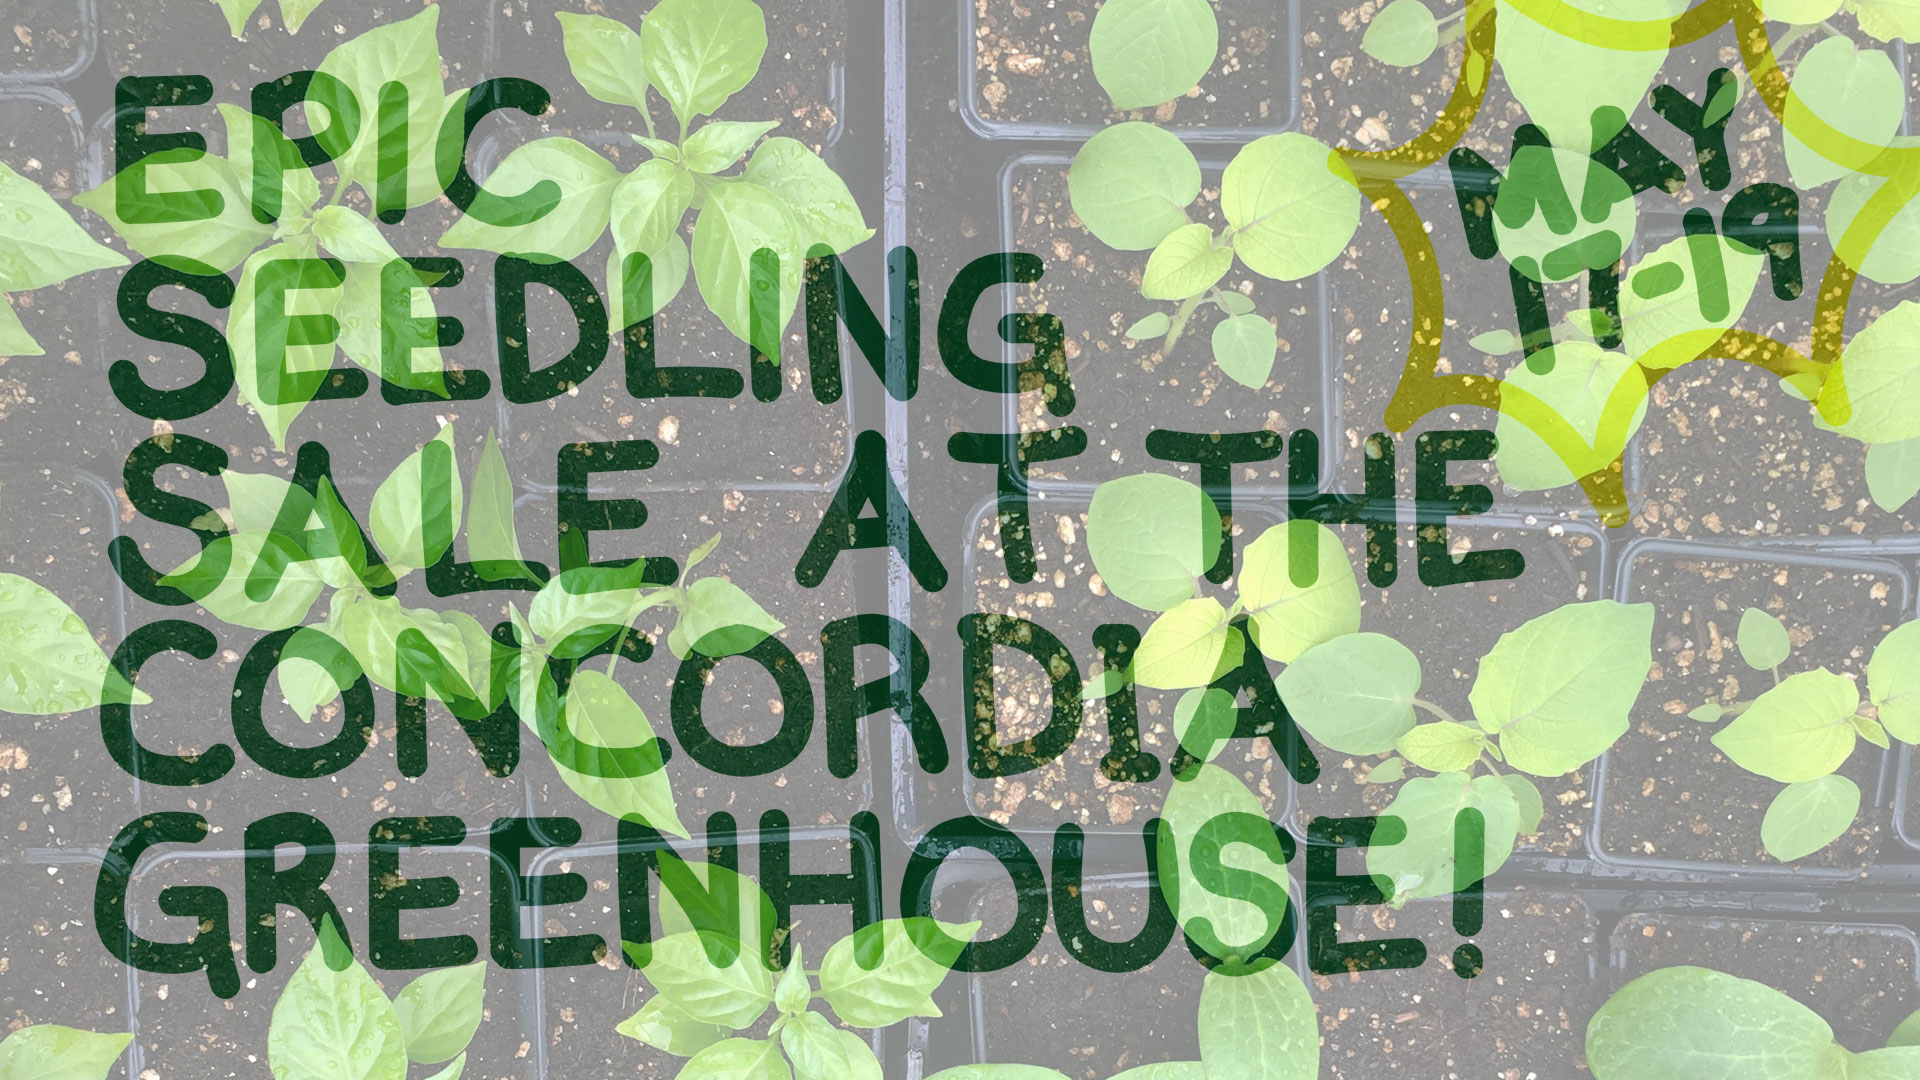 GH_Facebook_banner_Epic_seedling_sale_version4_small